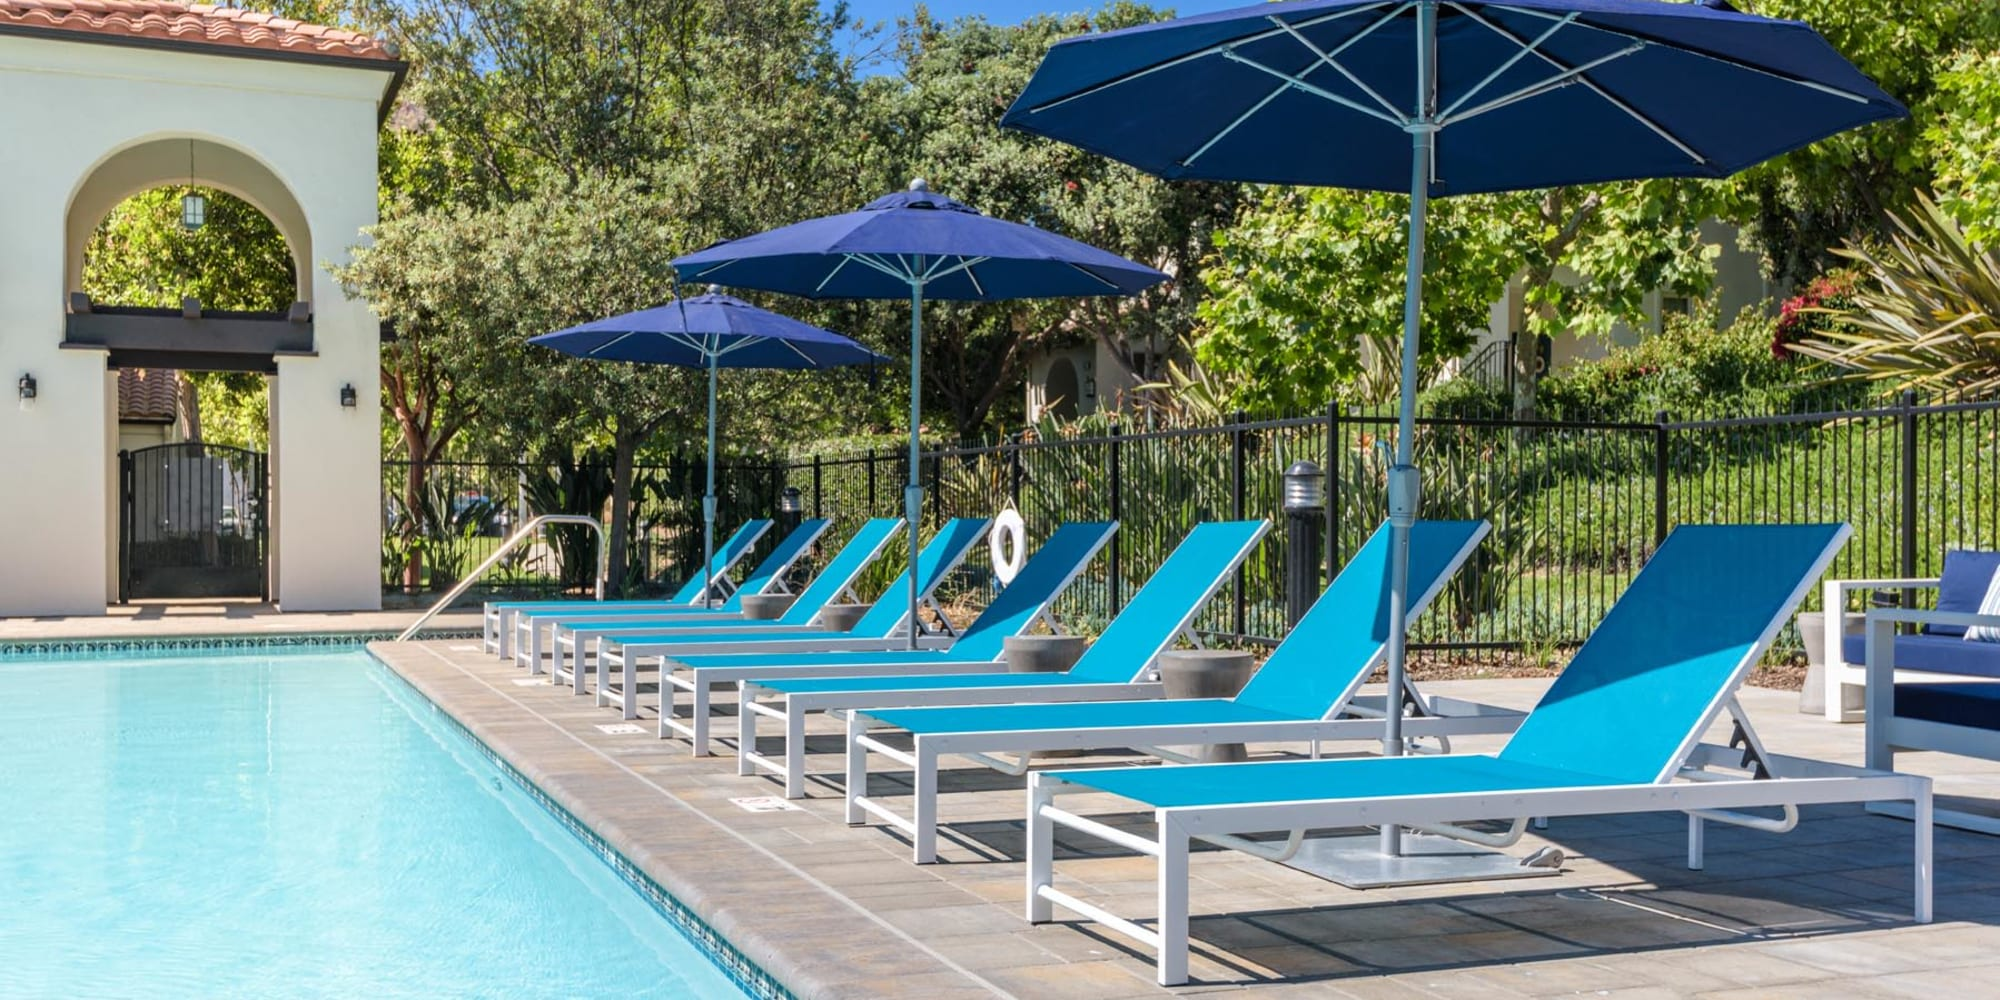 Chaise lounge chairs around the swimming pool at Mission Hills in Camarillo, California